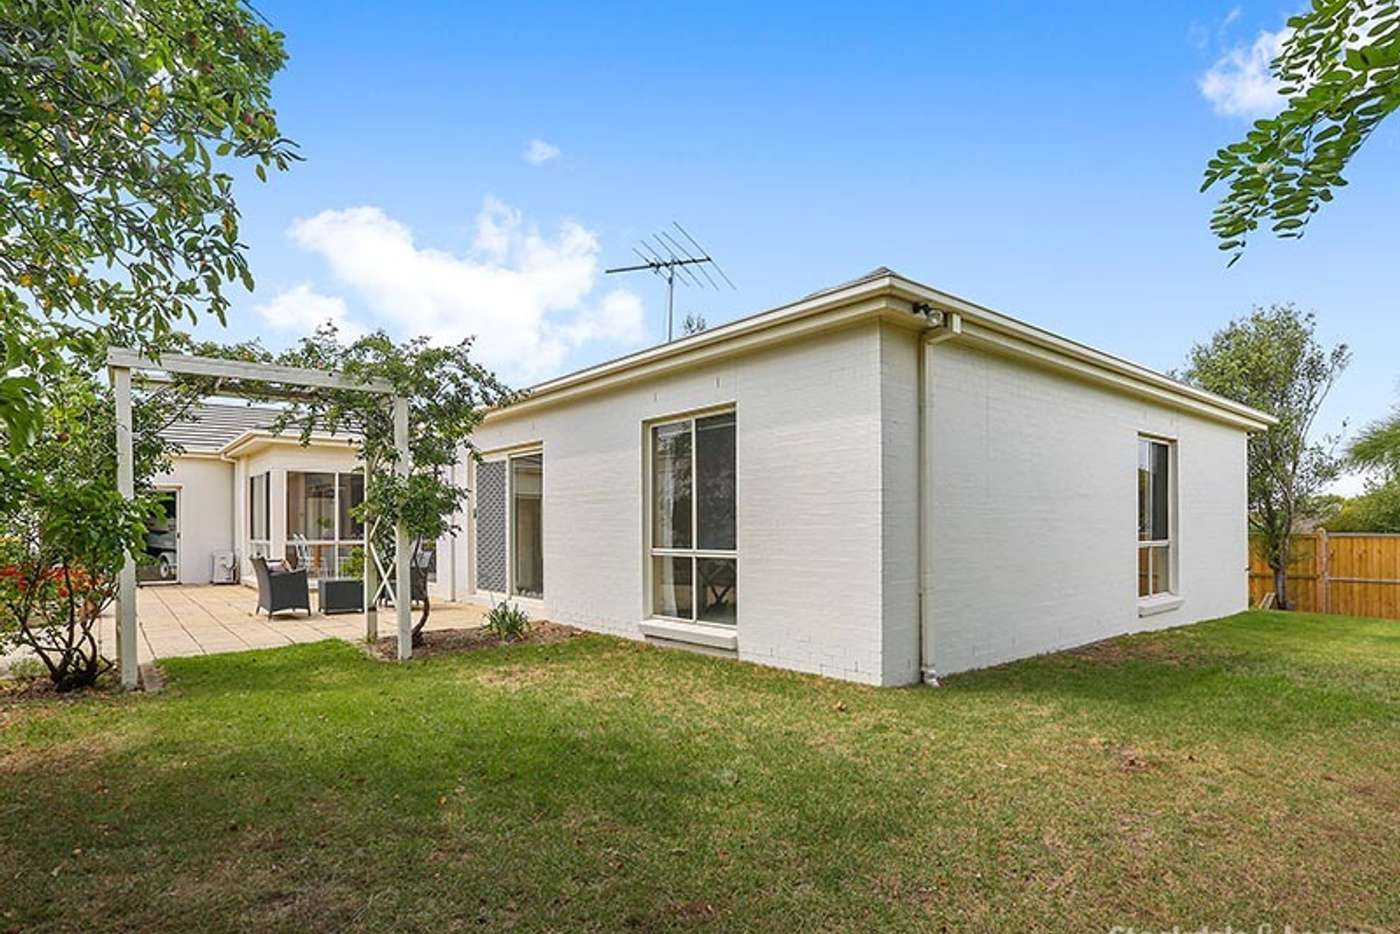 Seventh view of Homely house listing, 196 South Valley Road, Highton VIC 3216